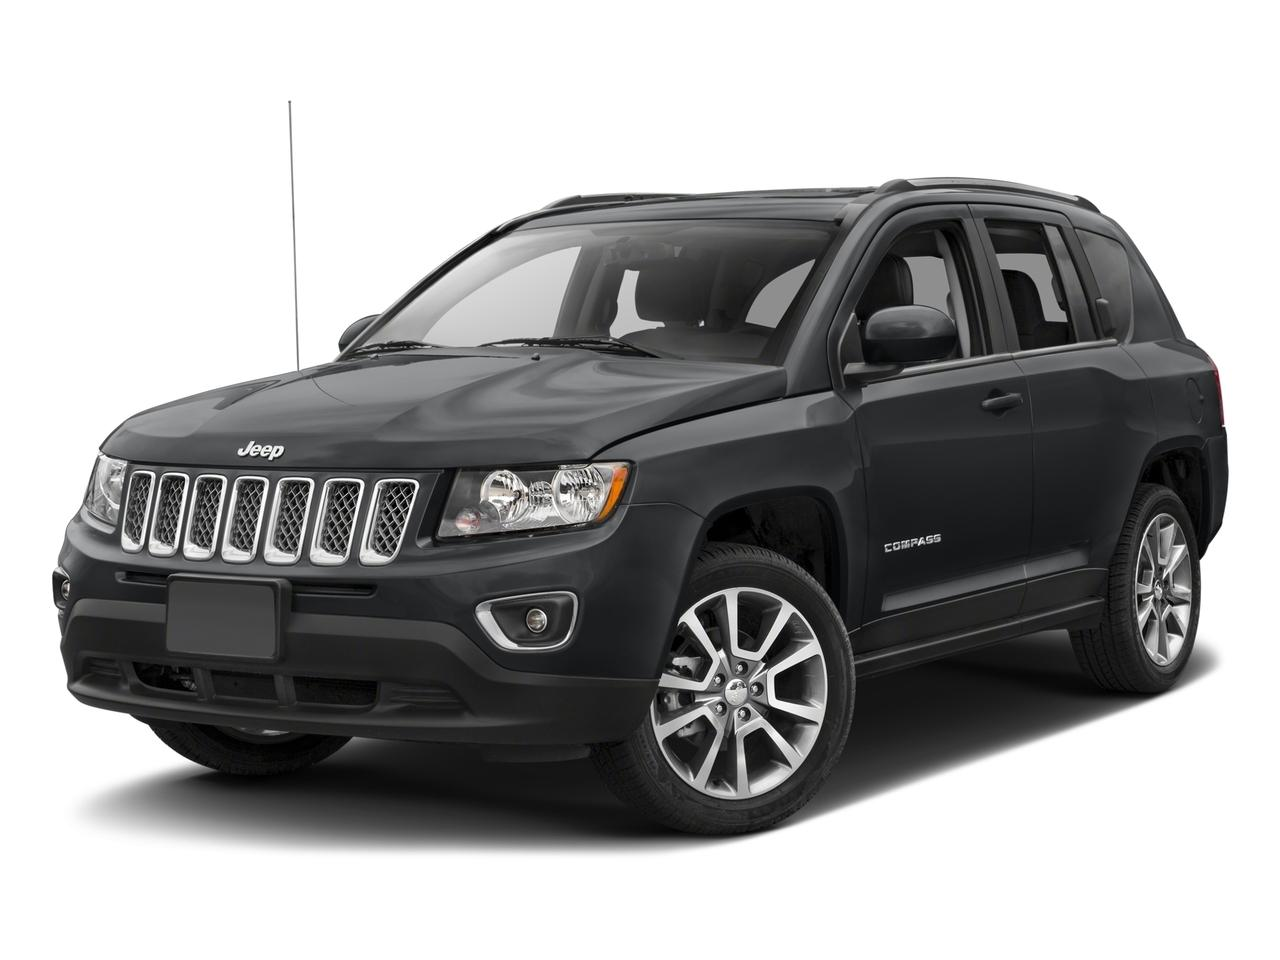 2017 Jeep Compass Vehicle Photo in Appleton, WI 54914